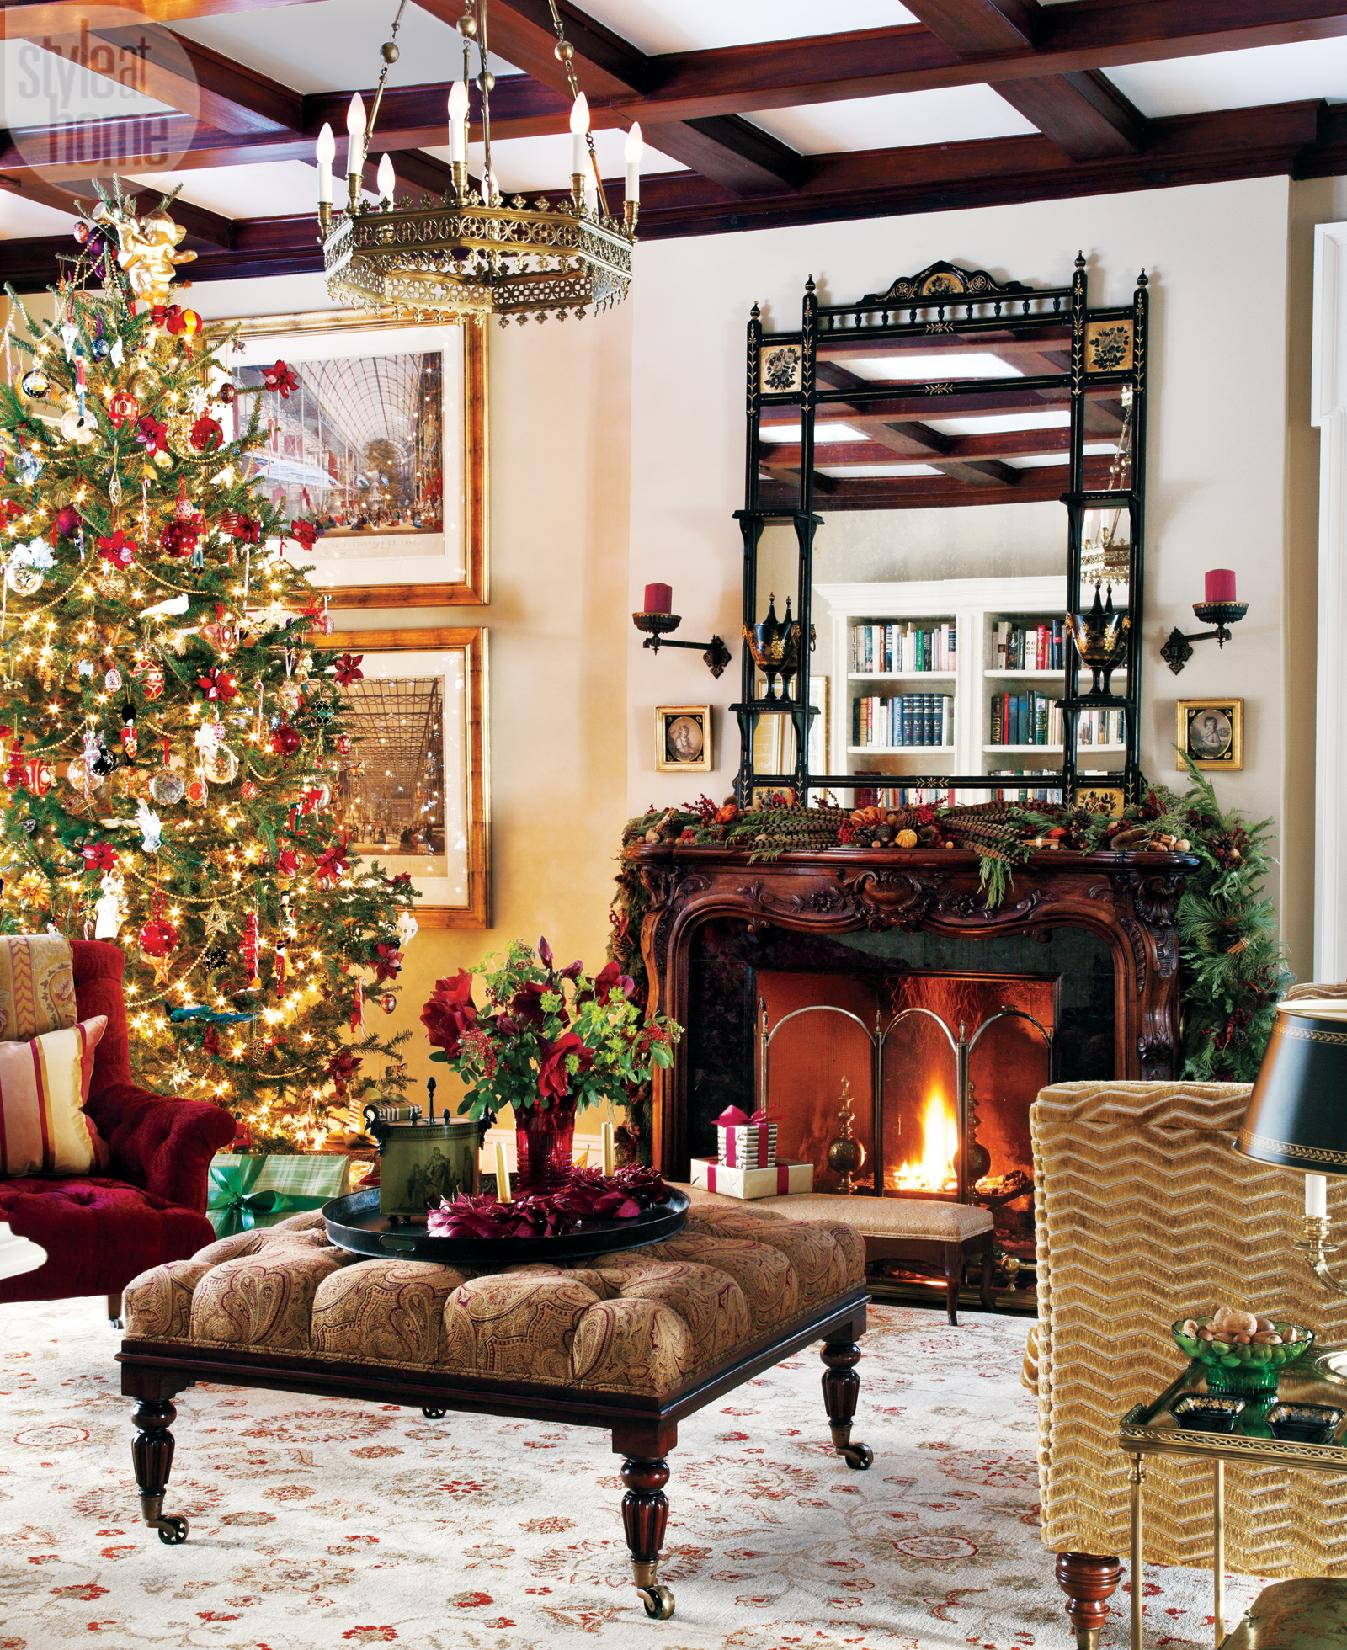 home and garden miraculous indoor minimalist christmas decorations ideas